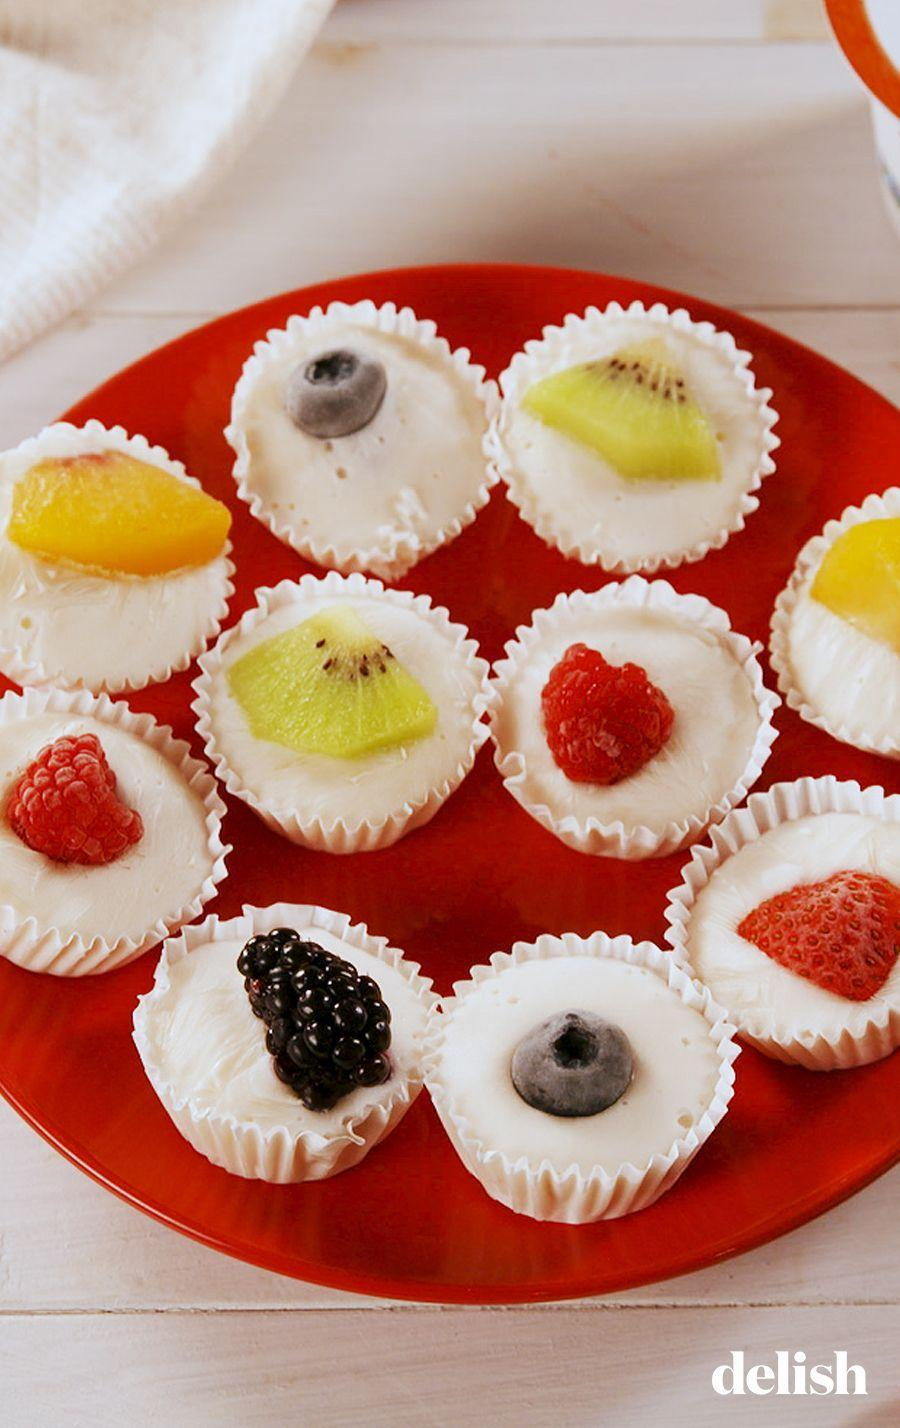 """<p>They taste as satisfying as they are easy to make!</p><p>Get the recipe from <a href=""""https://www.delish.com/cooking/recipe-ideas/a25619129/frozen-yogurt-fruit-bites-recipe/"""" rel=""""nofollow noopener"""" target=""""_blank"""" data-ylk=""""slk:Delish"""" class=""""link rapid-noclick-resp"""">Delish</a>.</p>"""